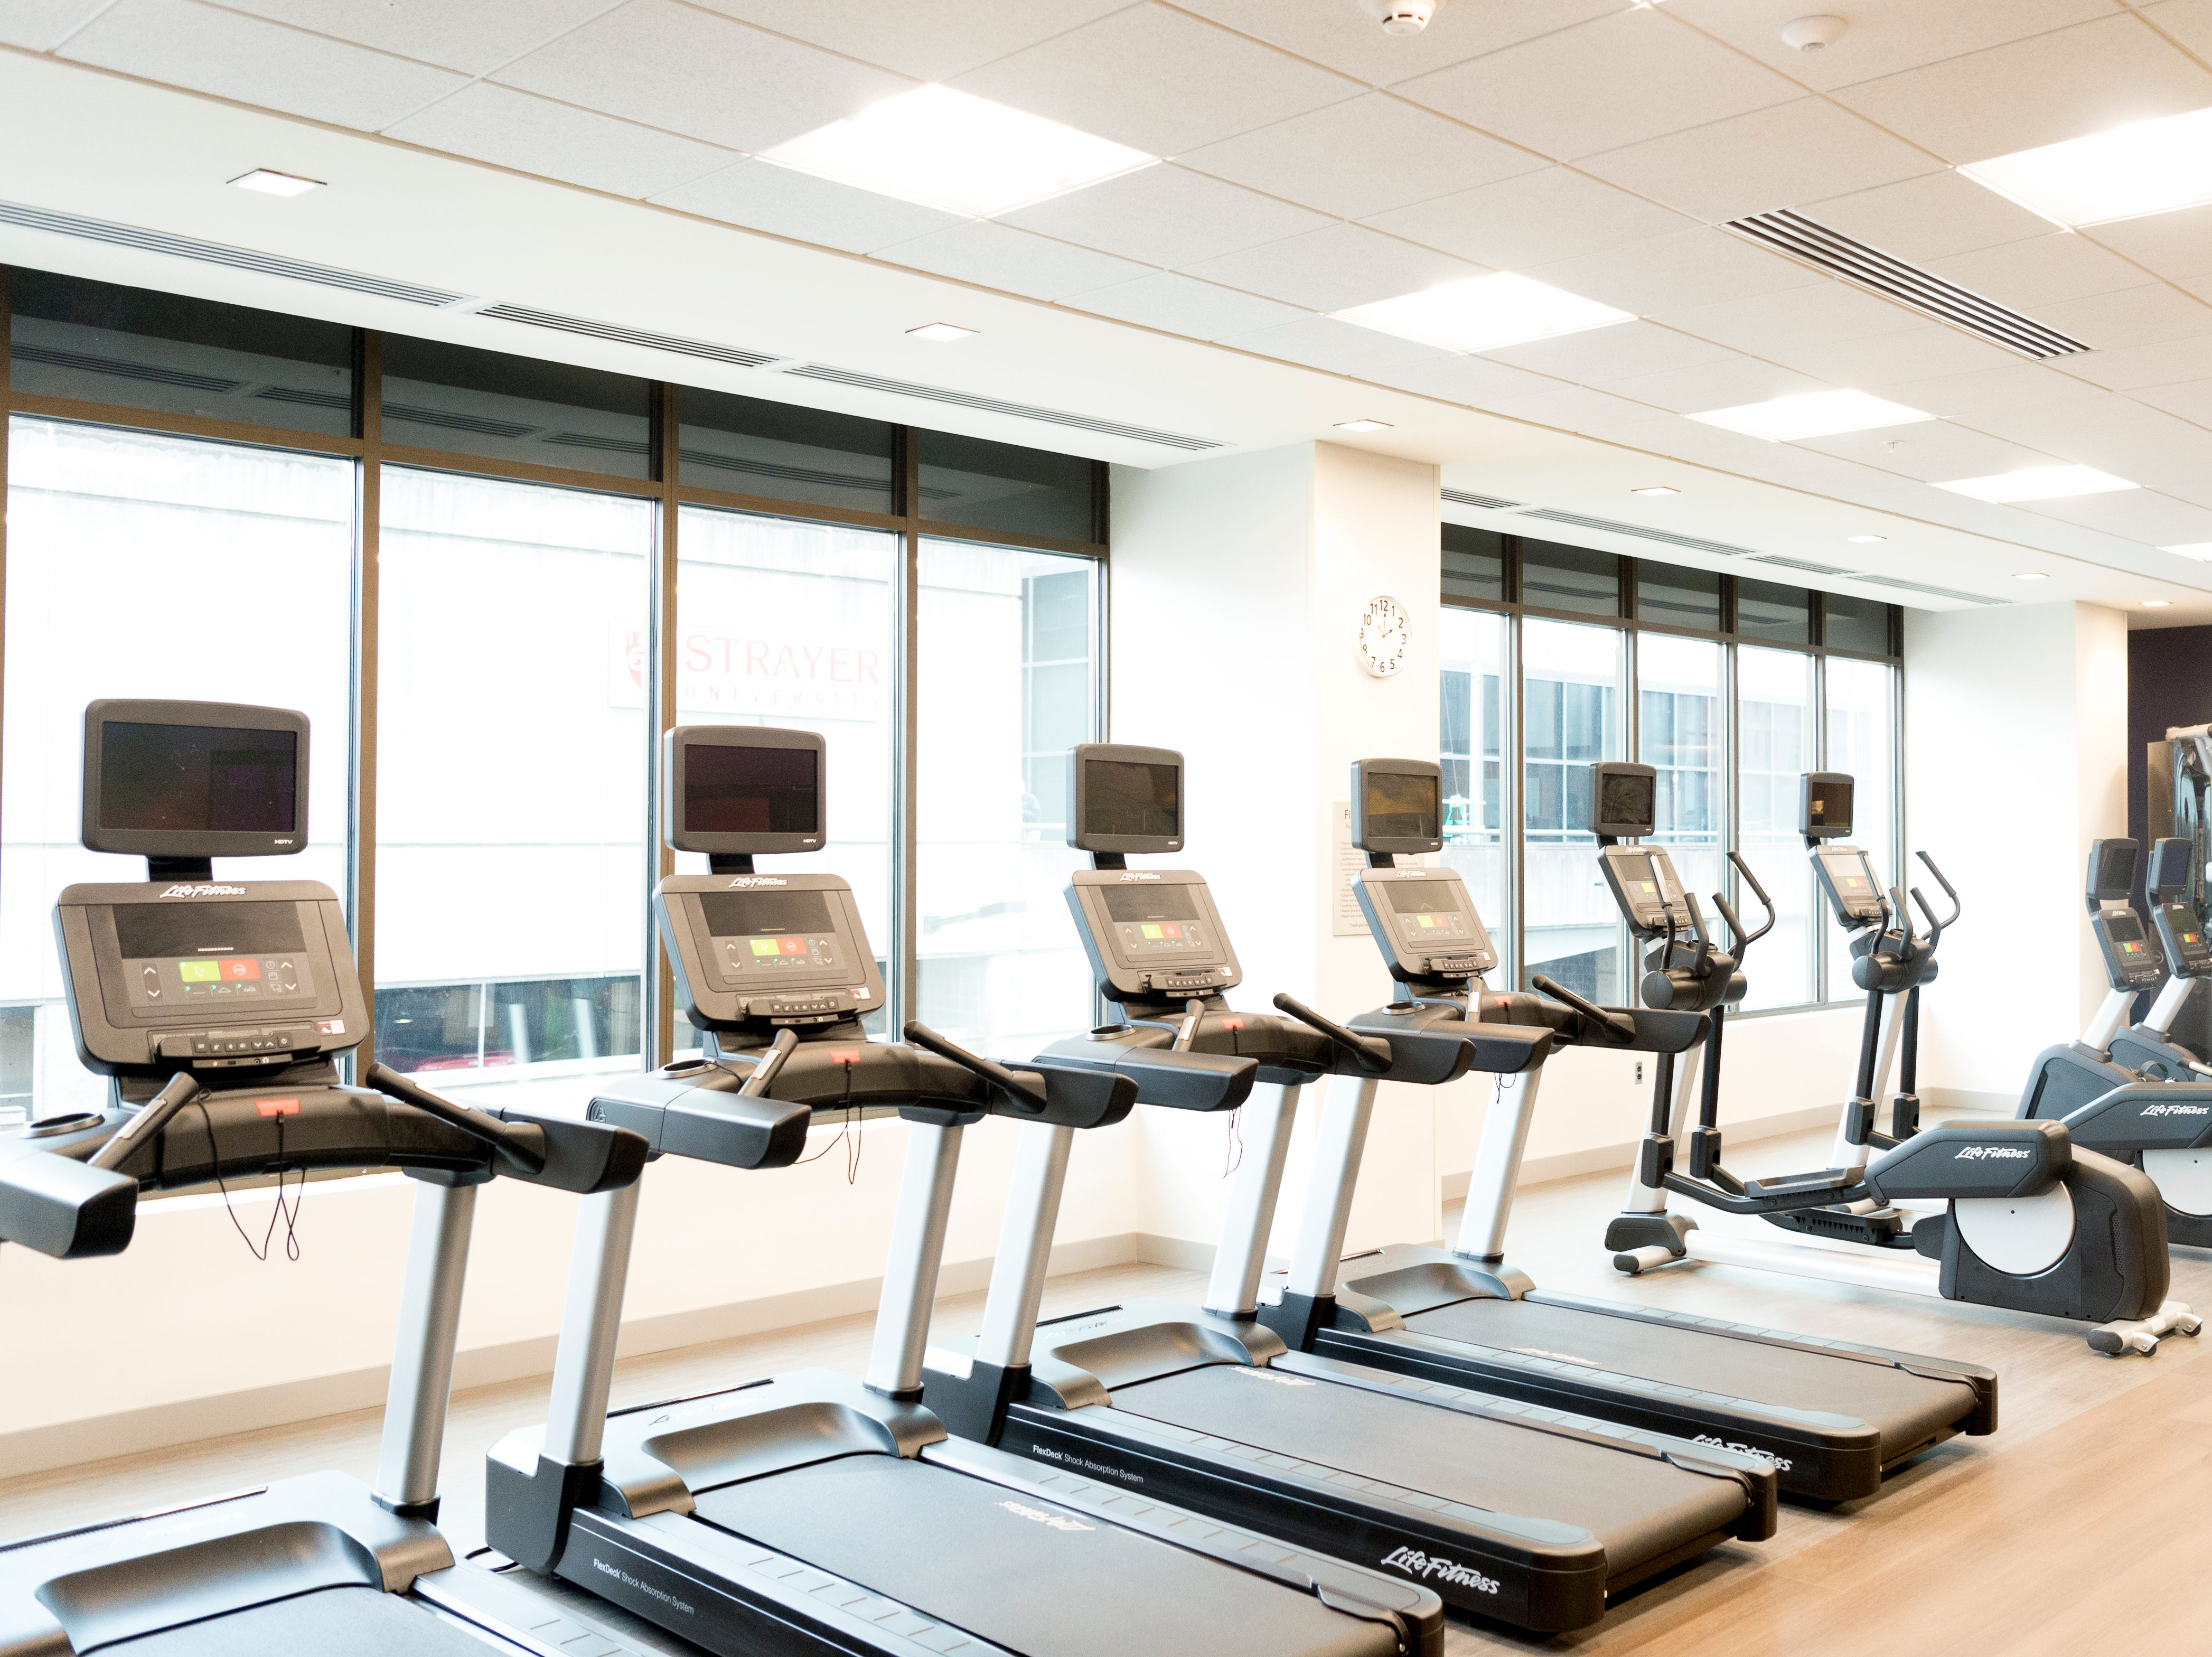 A gym room inside the new Courtyard and Residence Inn by Marriott at 210 Church Ave. in Knoxville, Tennessee on Monday, March 25, 2019. The hotel is the first of its kind in Knoxville to offer two different tiers of hospitality within the same building.